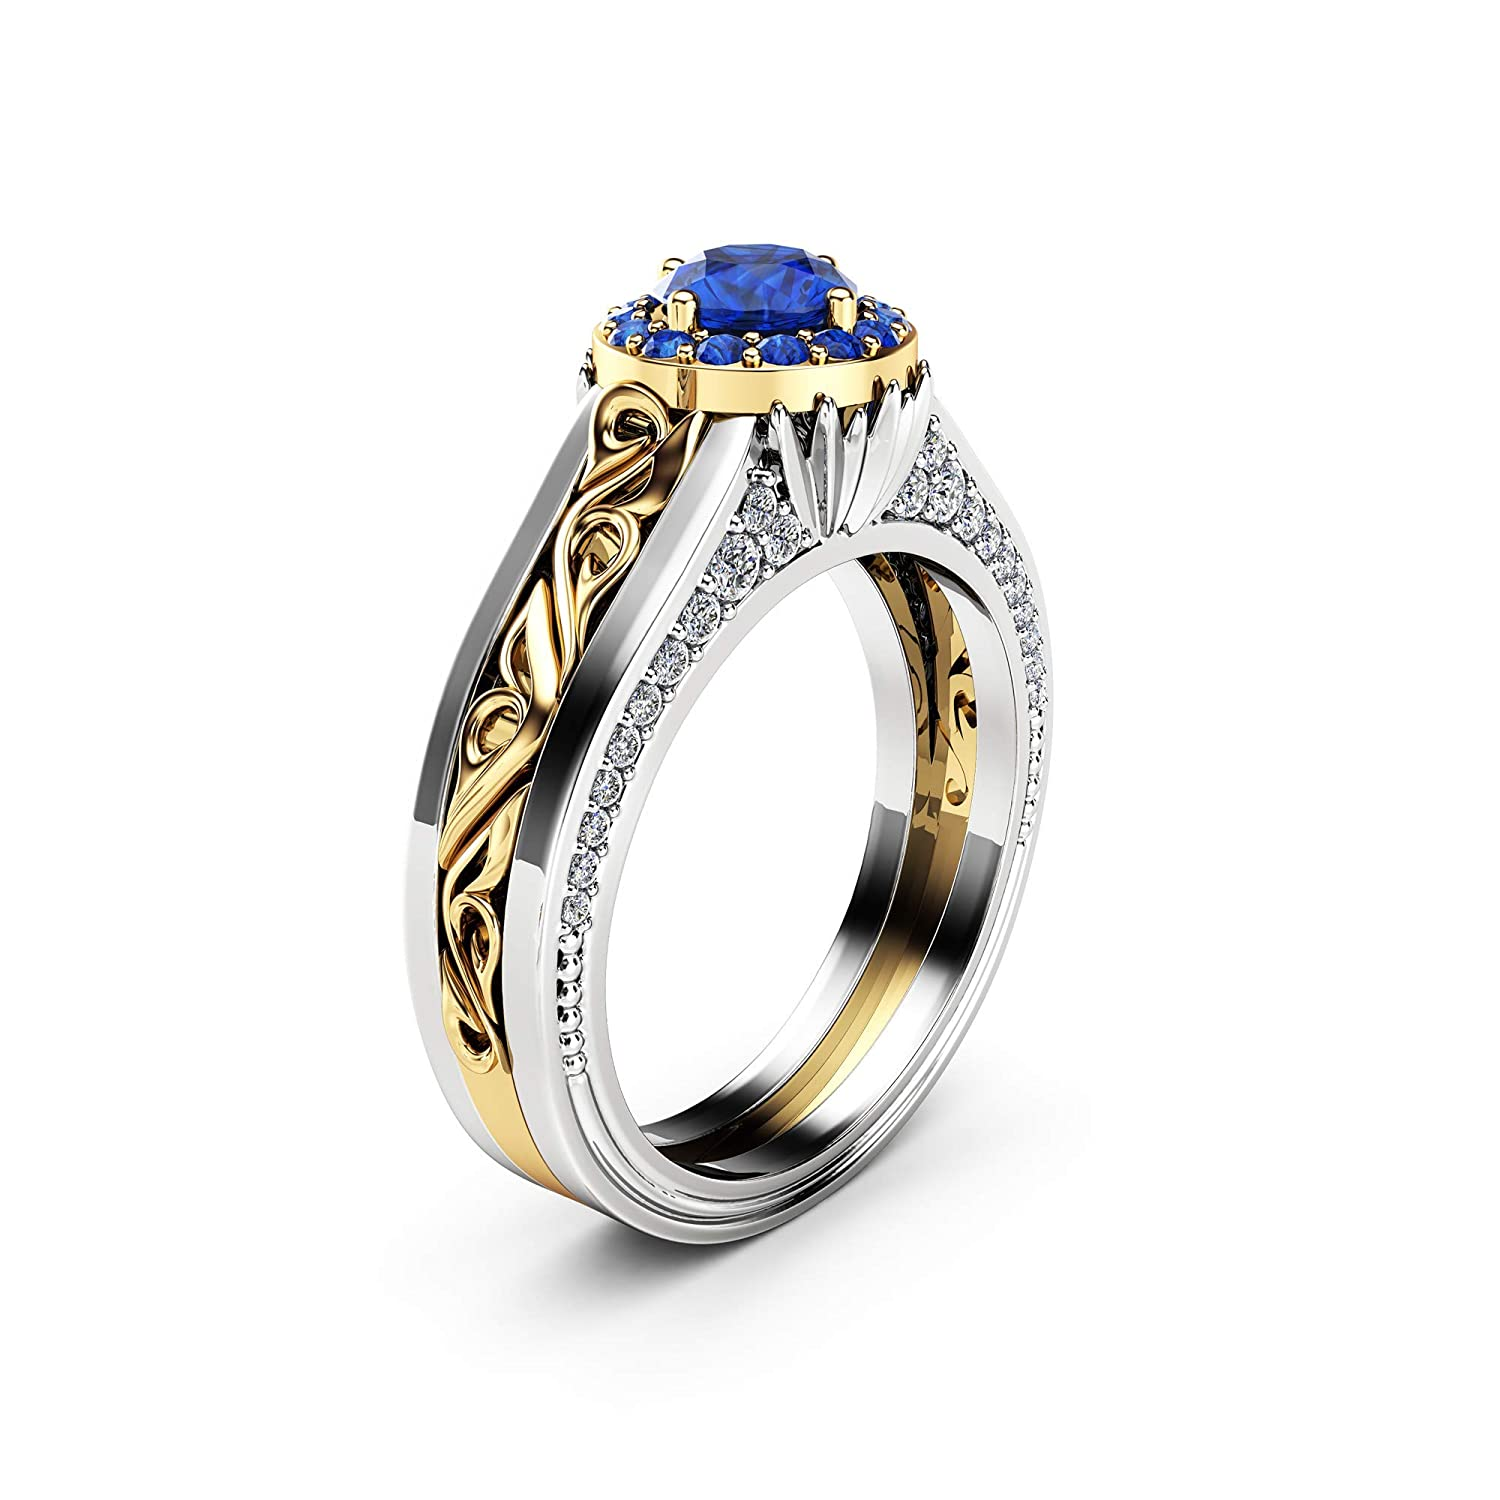 Halo low-pricing Sapphire Clearance SALE! Limited time! Engagement Ring 14K Yellow Vintag Solid Gold White